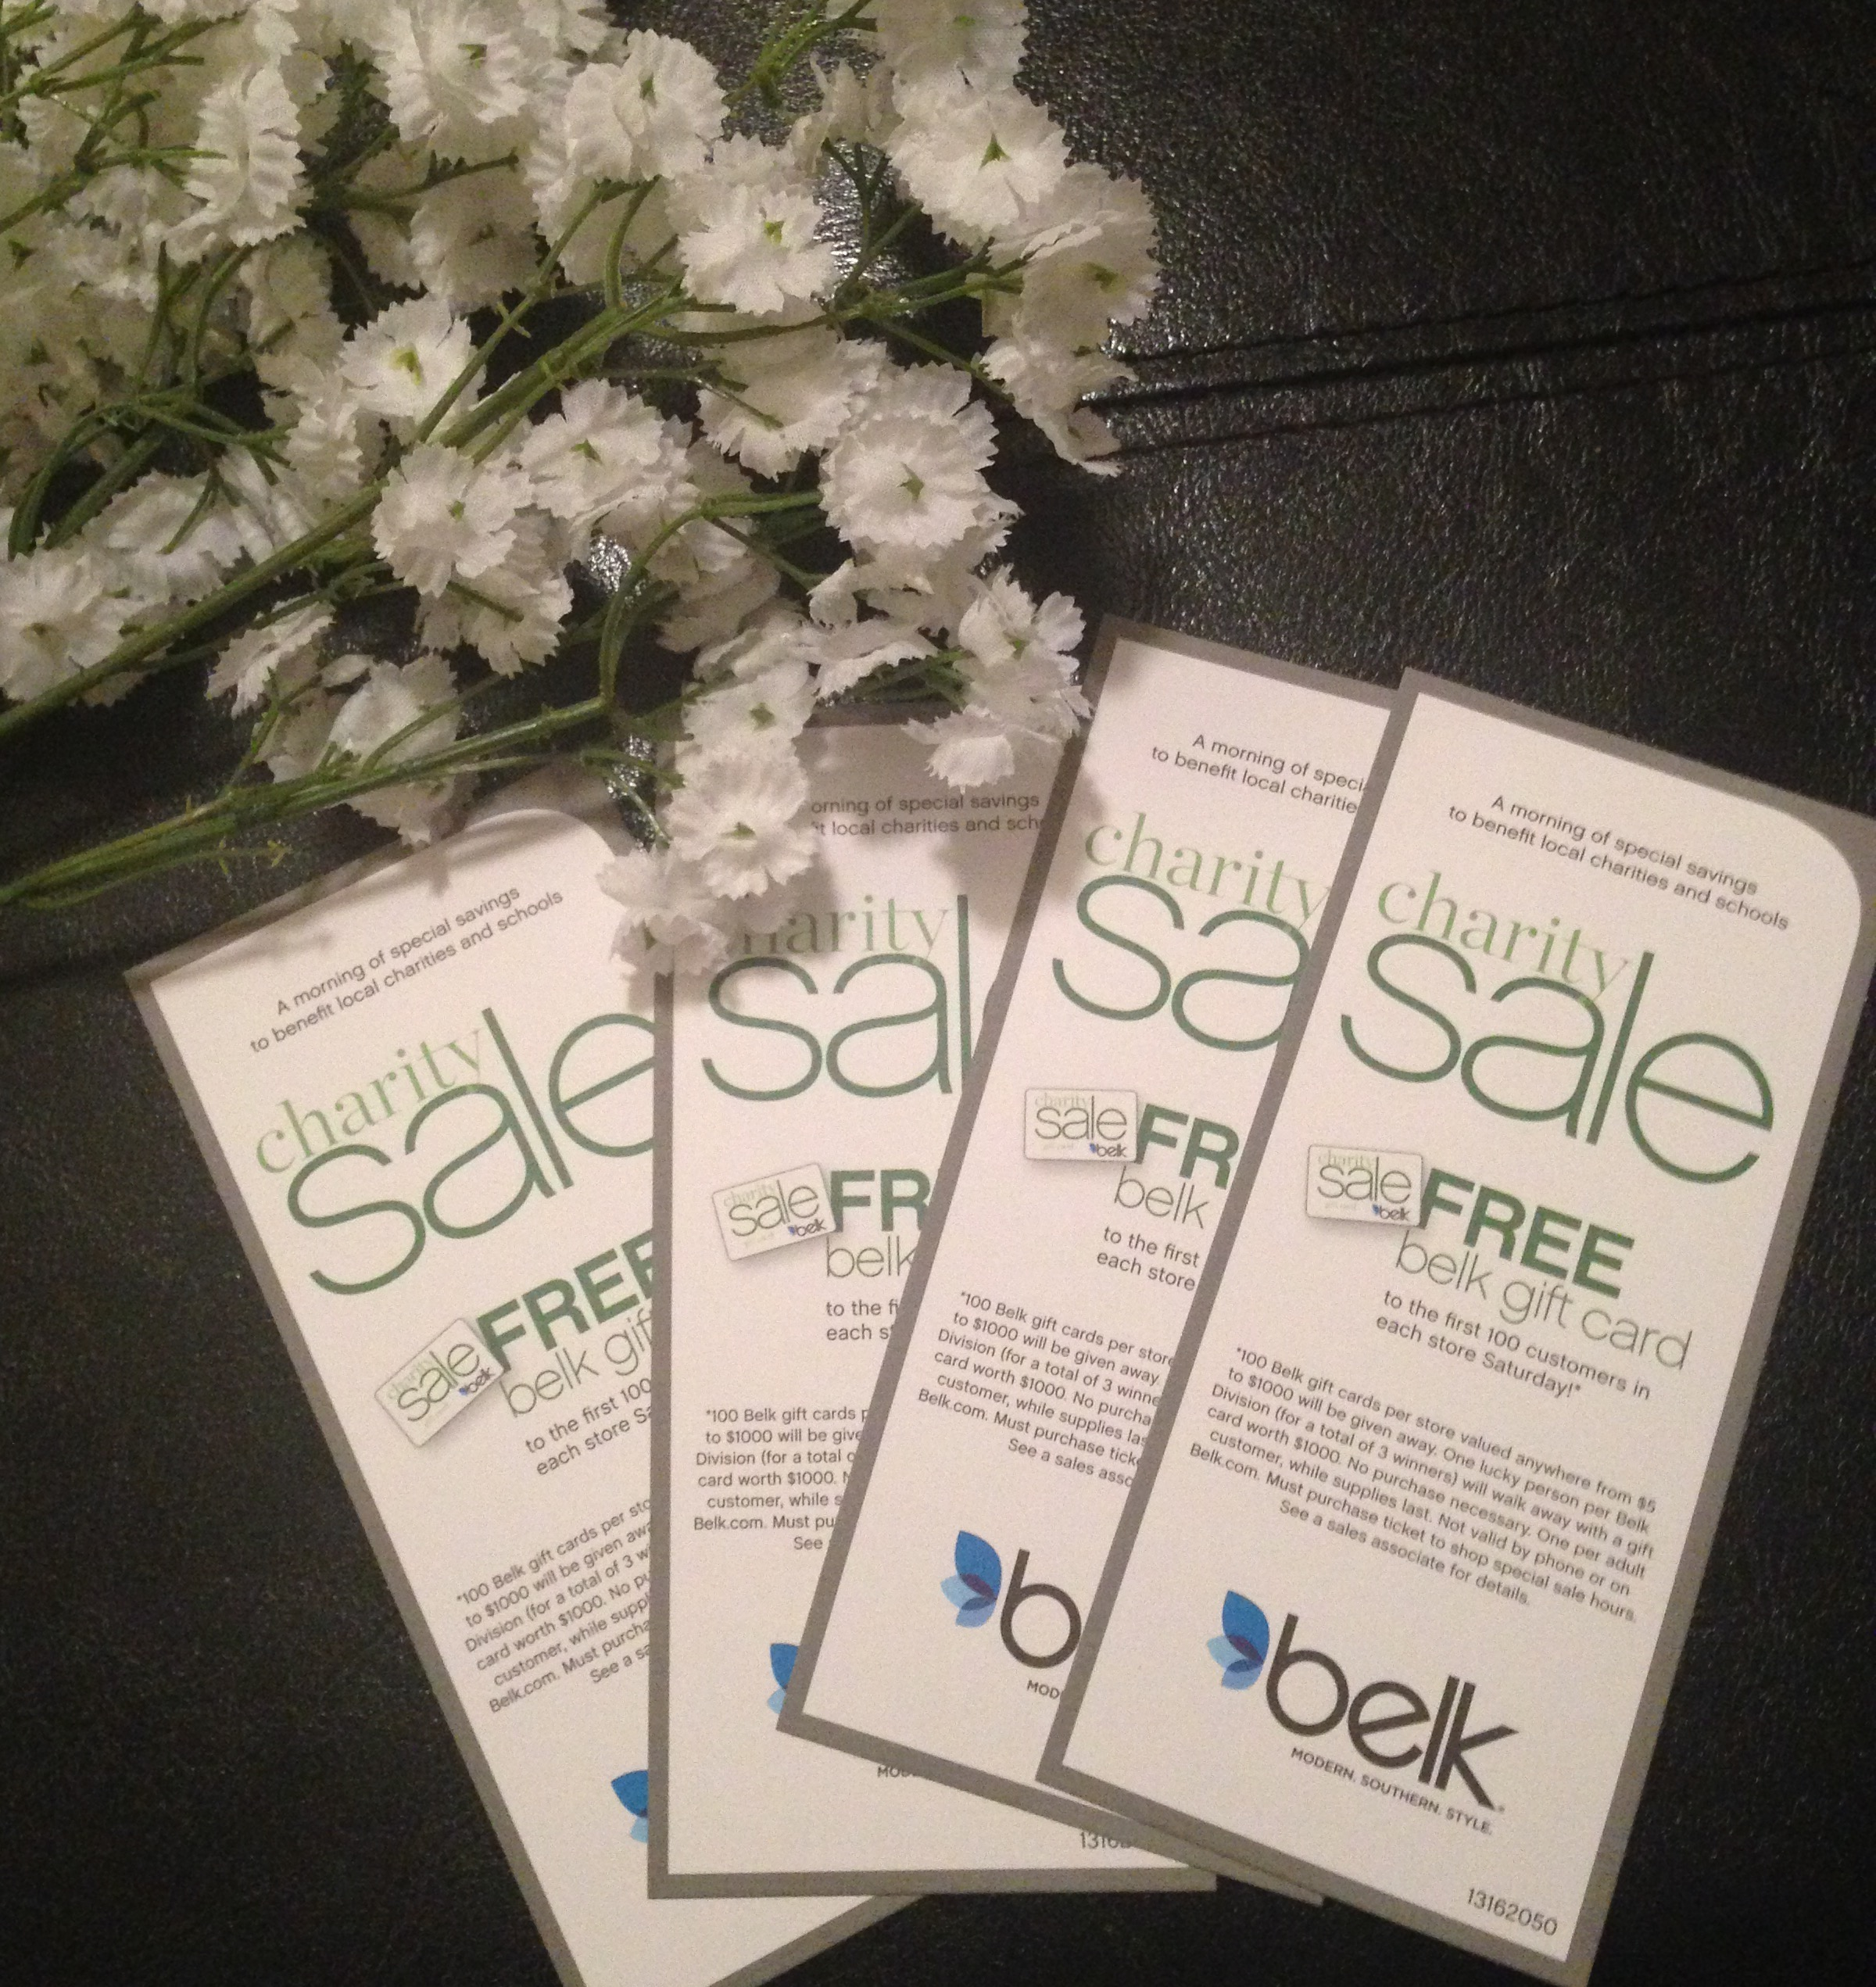 Belk Charity Sale is Tomorrow! - See Jane Write